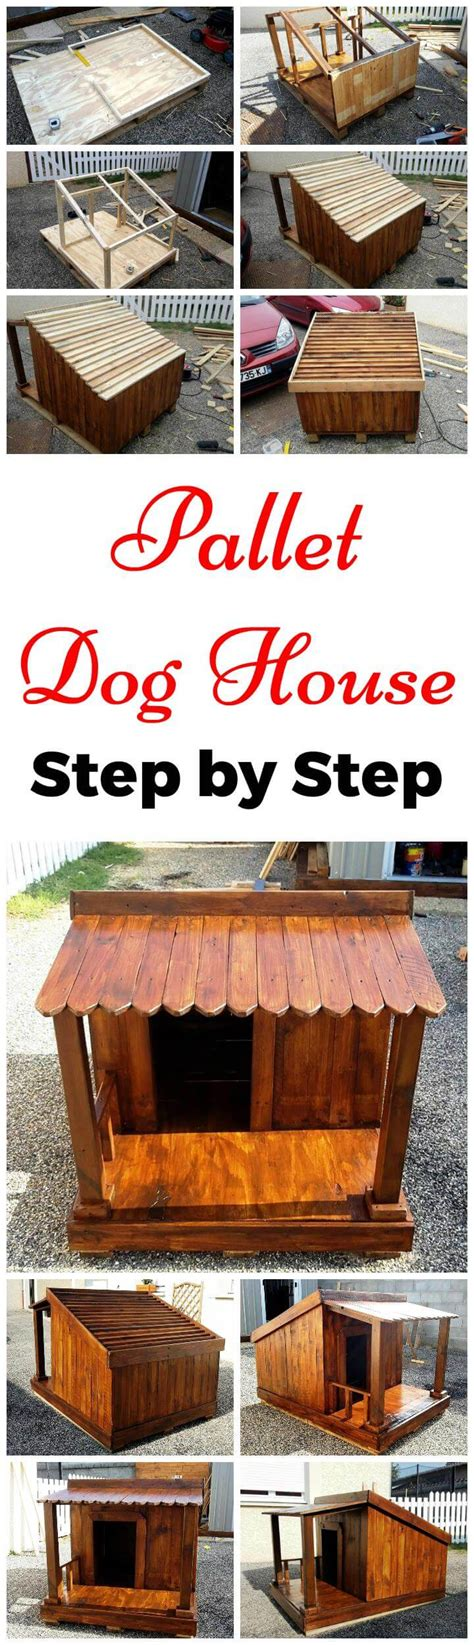 Diy Pallet Dog House Step By Step Instructions